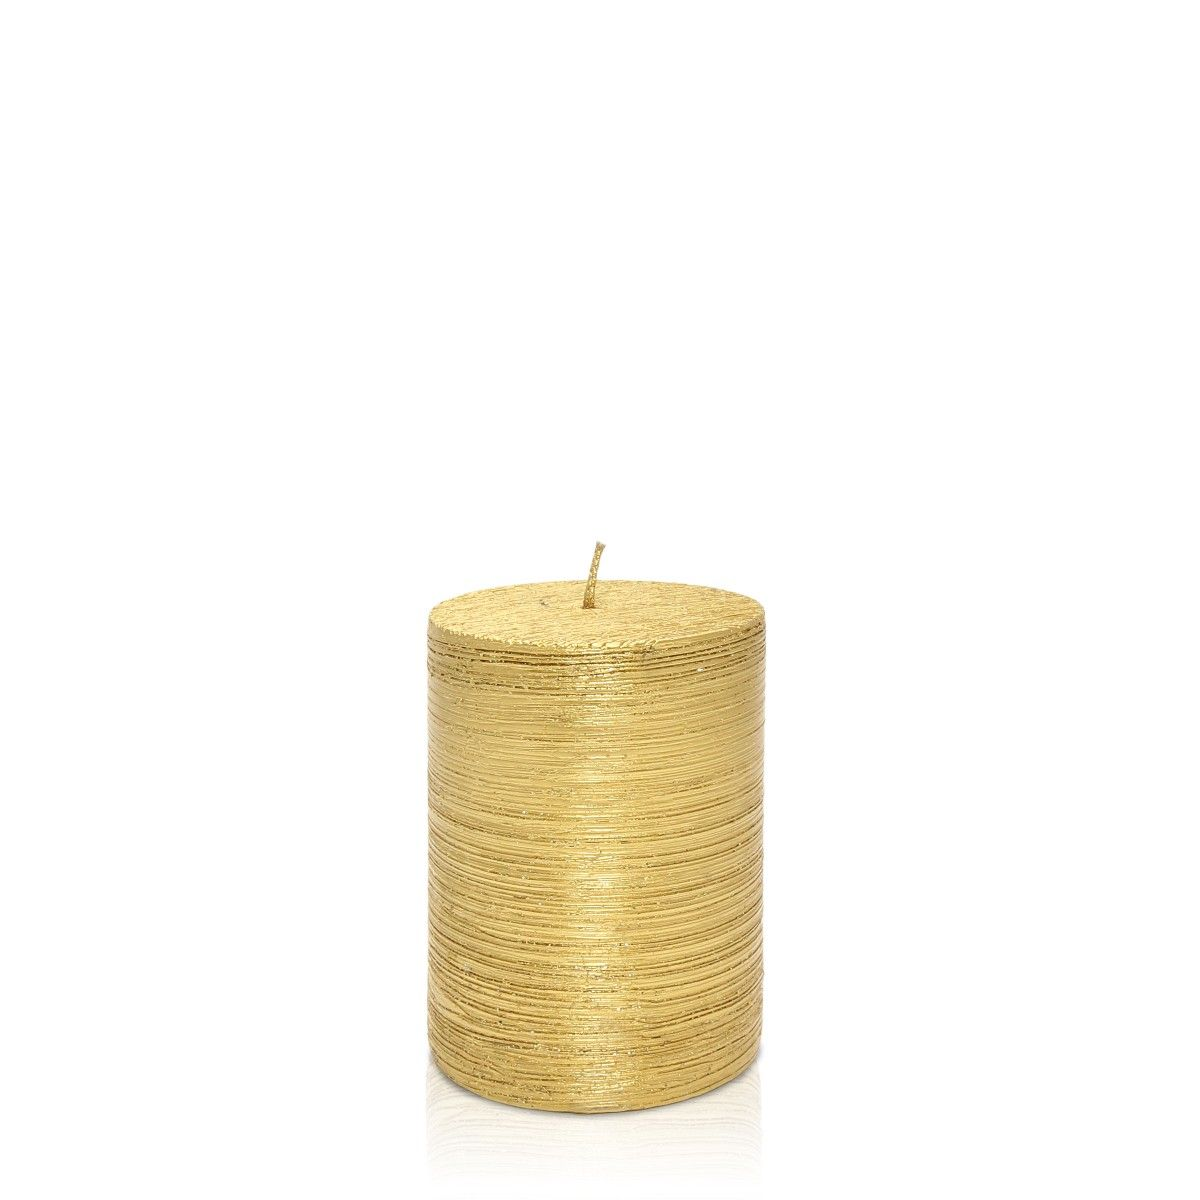 Buy Candles Online Buy Glitter Pillar Gold Candle Online In India They Say All That